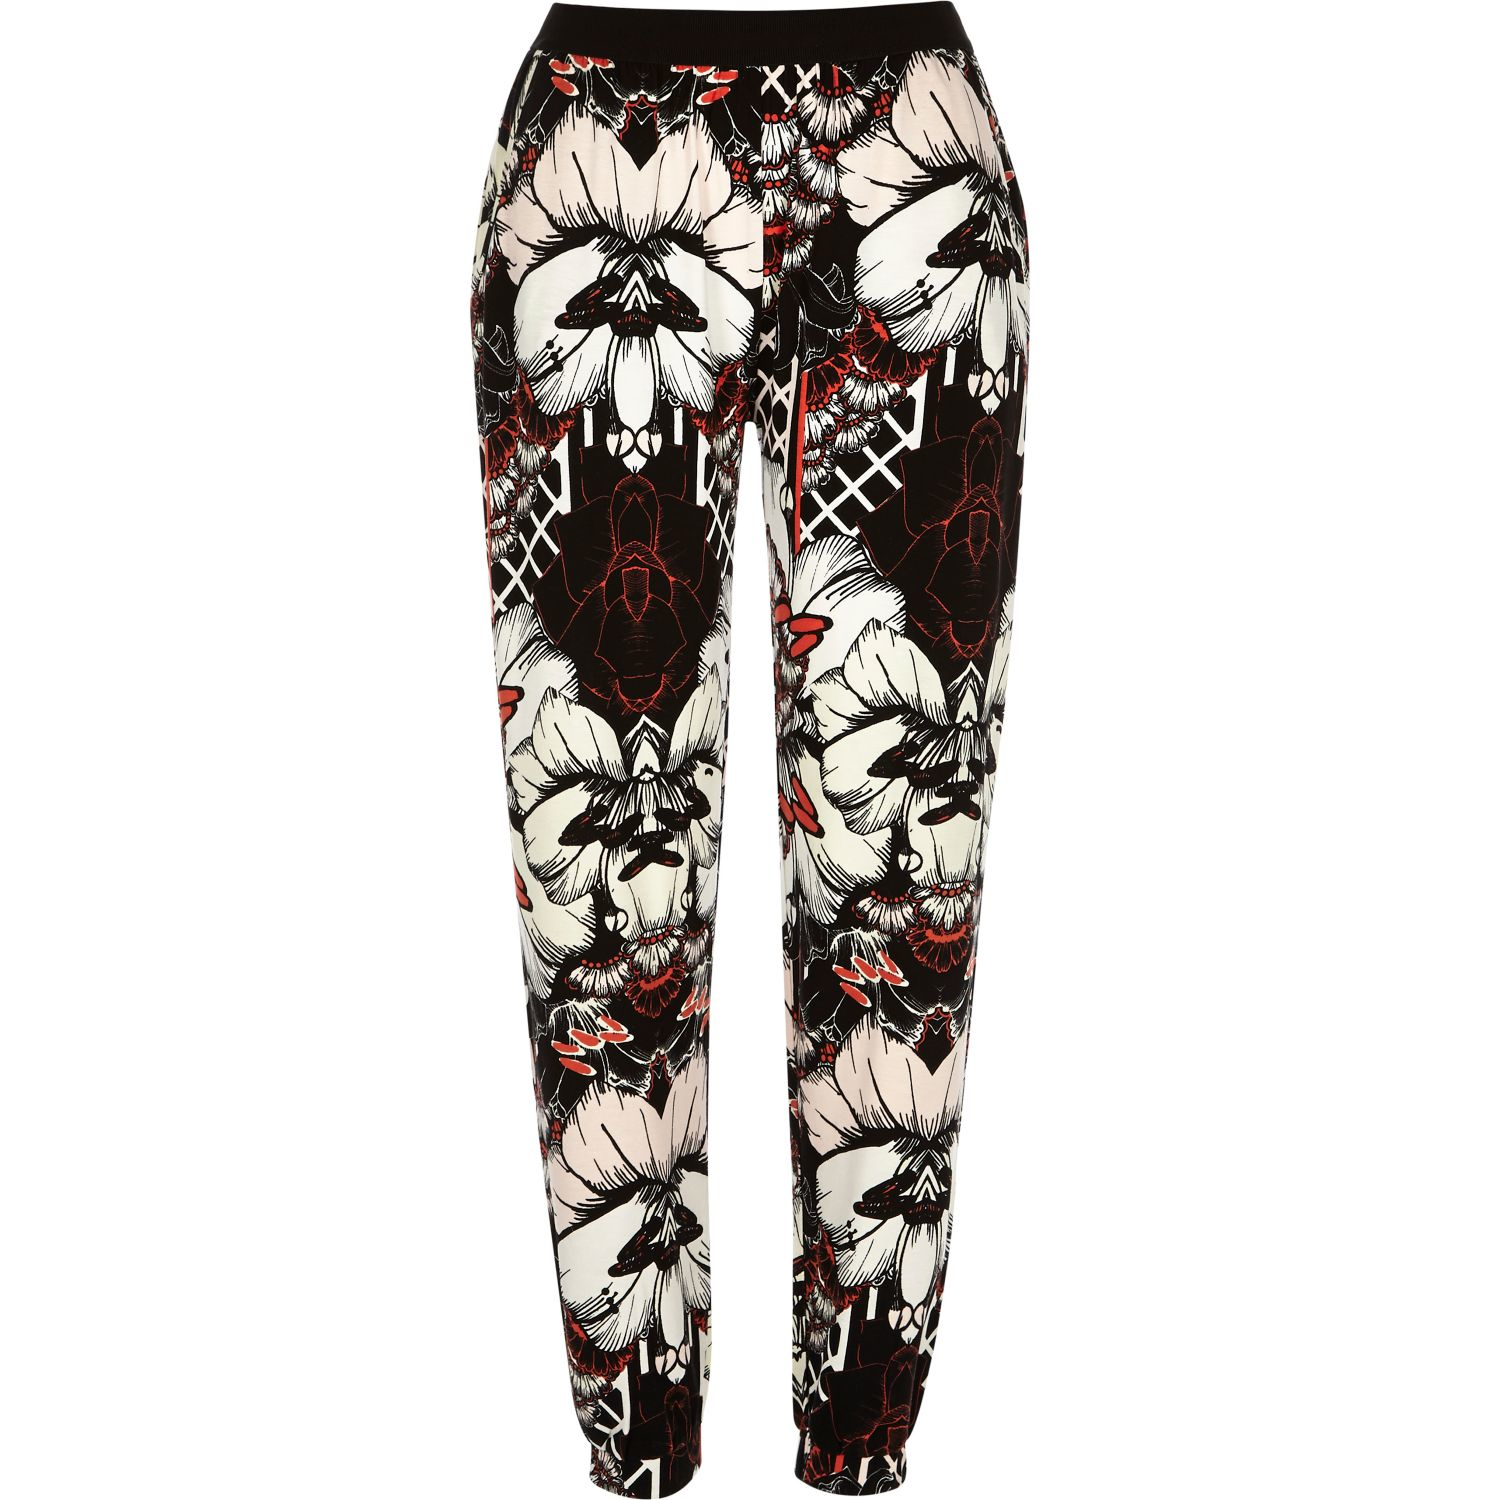 430e62aebb83 Lyst - River Island Black Floral Print Jersey Jogger Pants in Black